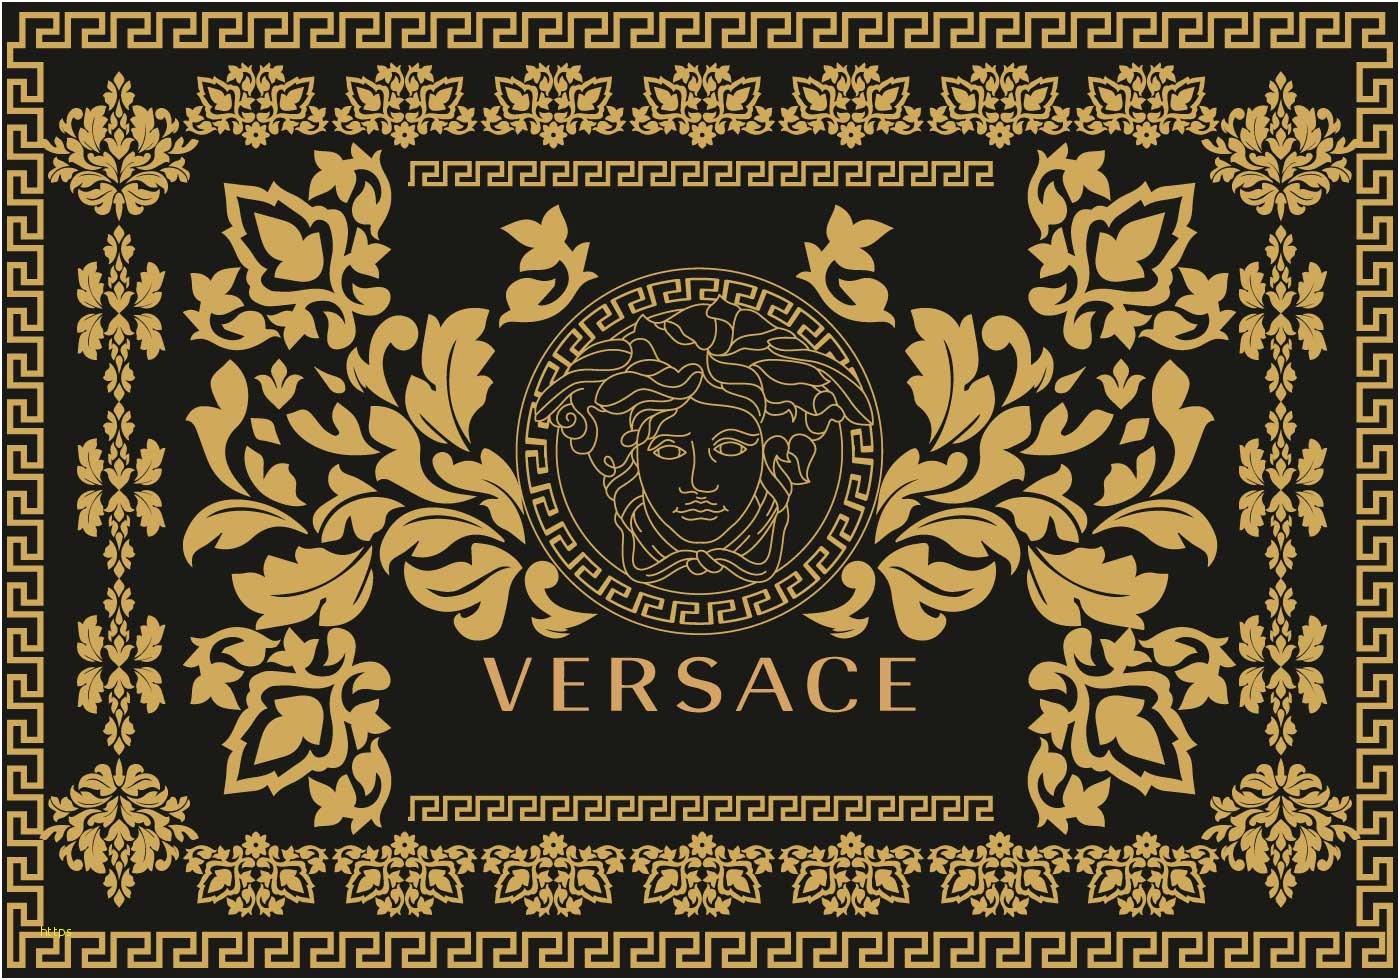 Versace Wallpaper Awesome Versace Background Vector Versace Iphone 7 Plus Case 40150 Hd Wallpaper Backgrounds Download